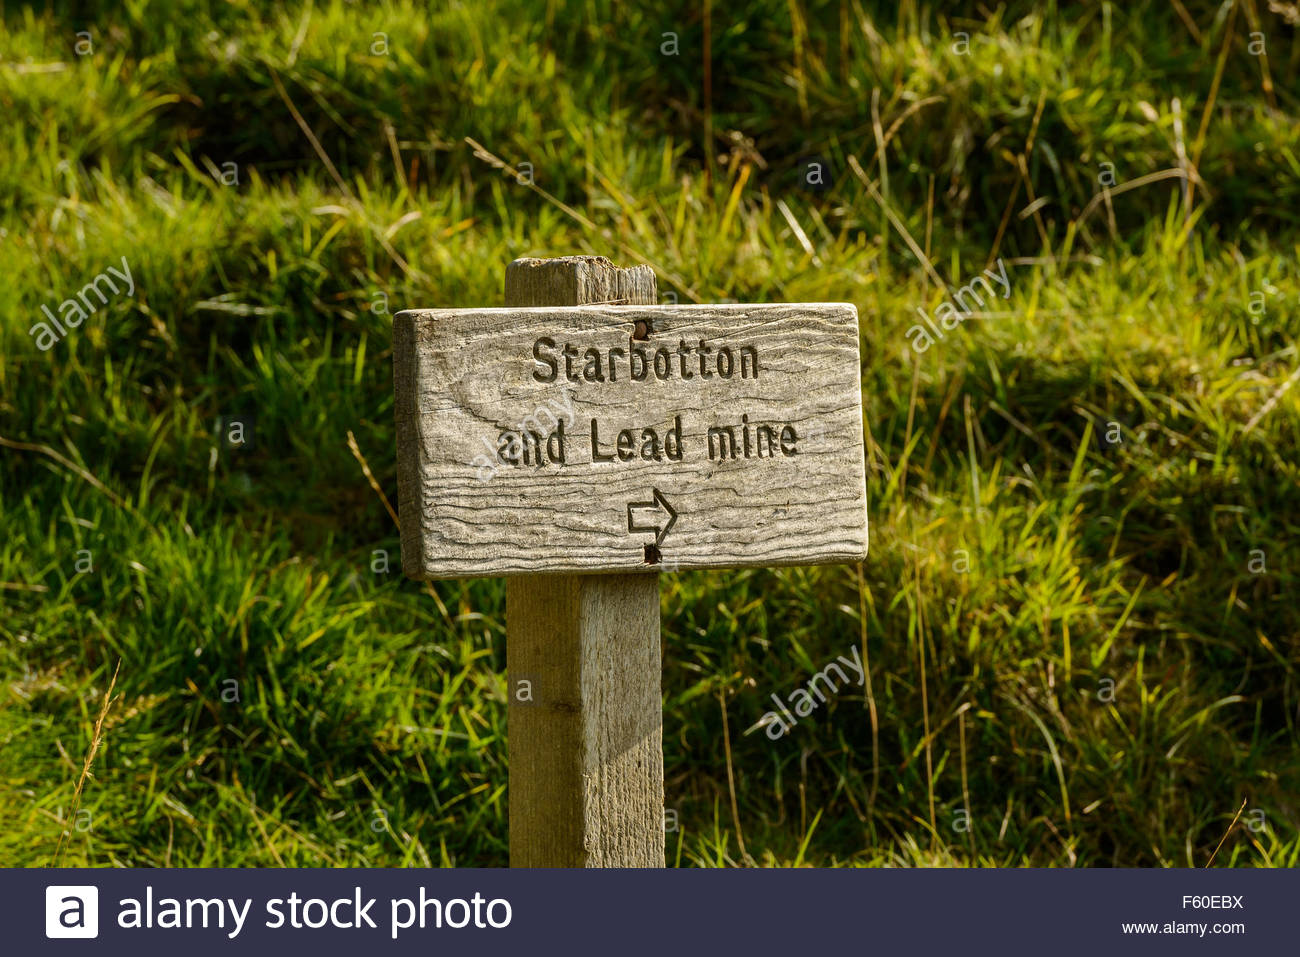 Wood signpost near Buckden, Wharfdale in the Yorkshire Dales, England indicating direction to Starbotton and Lead - Stock Image